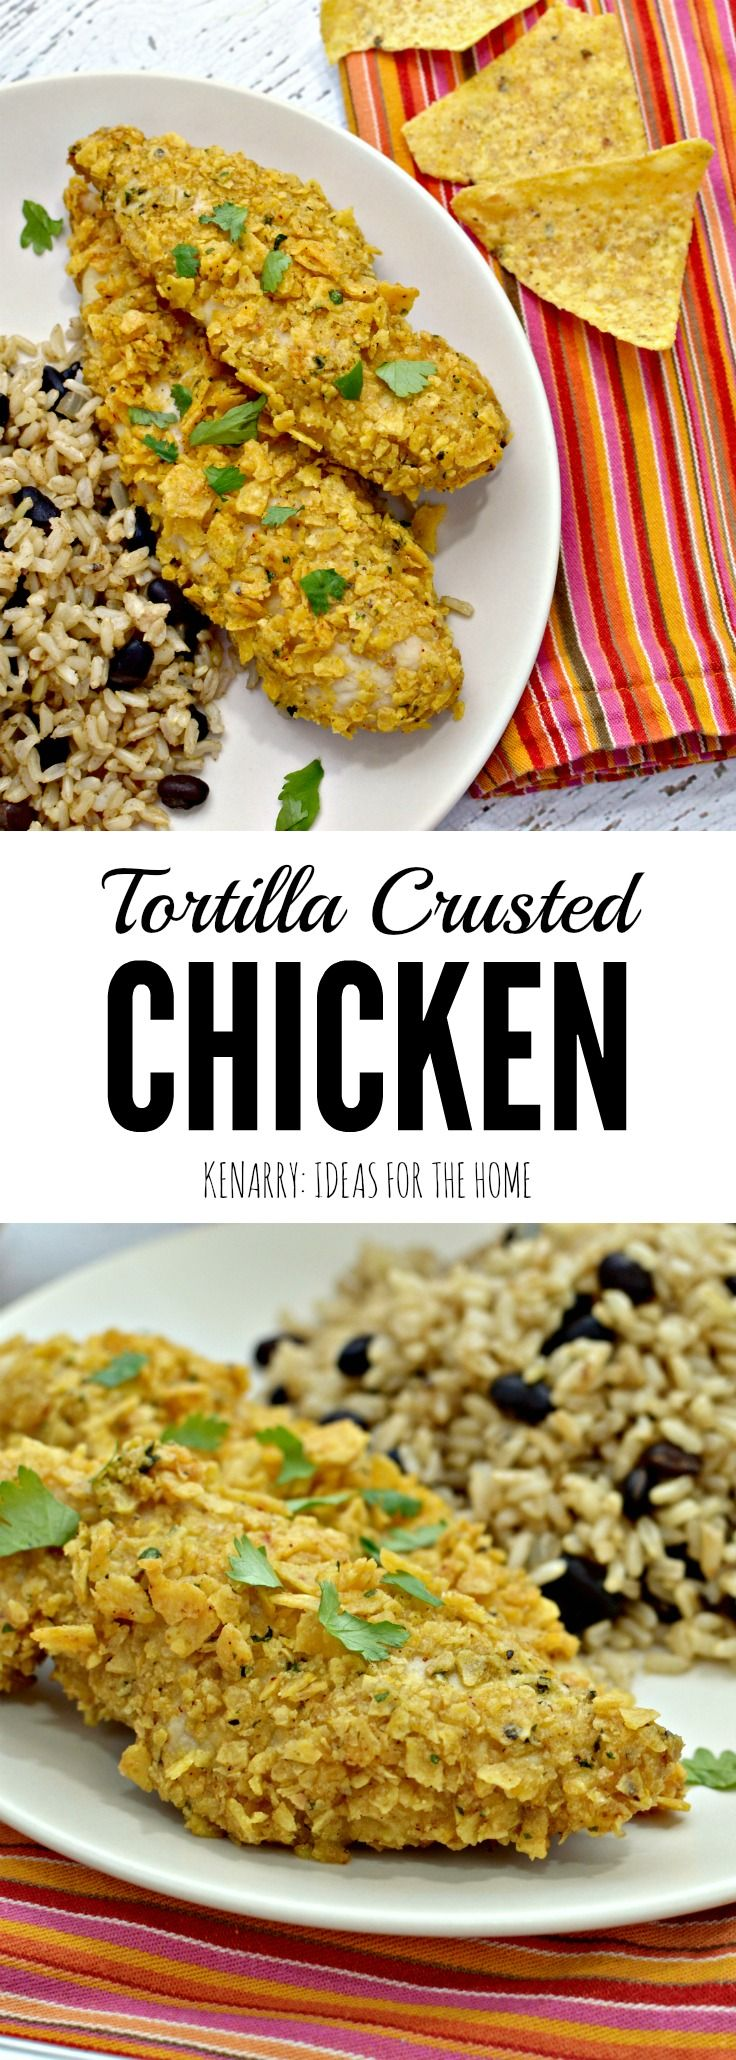 Tortilla Crusted Chicken